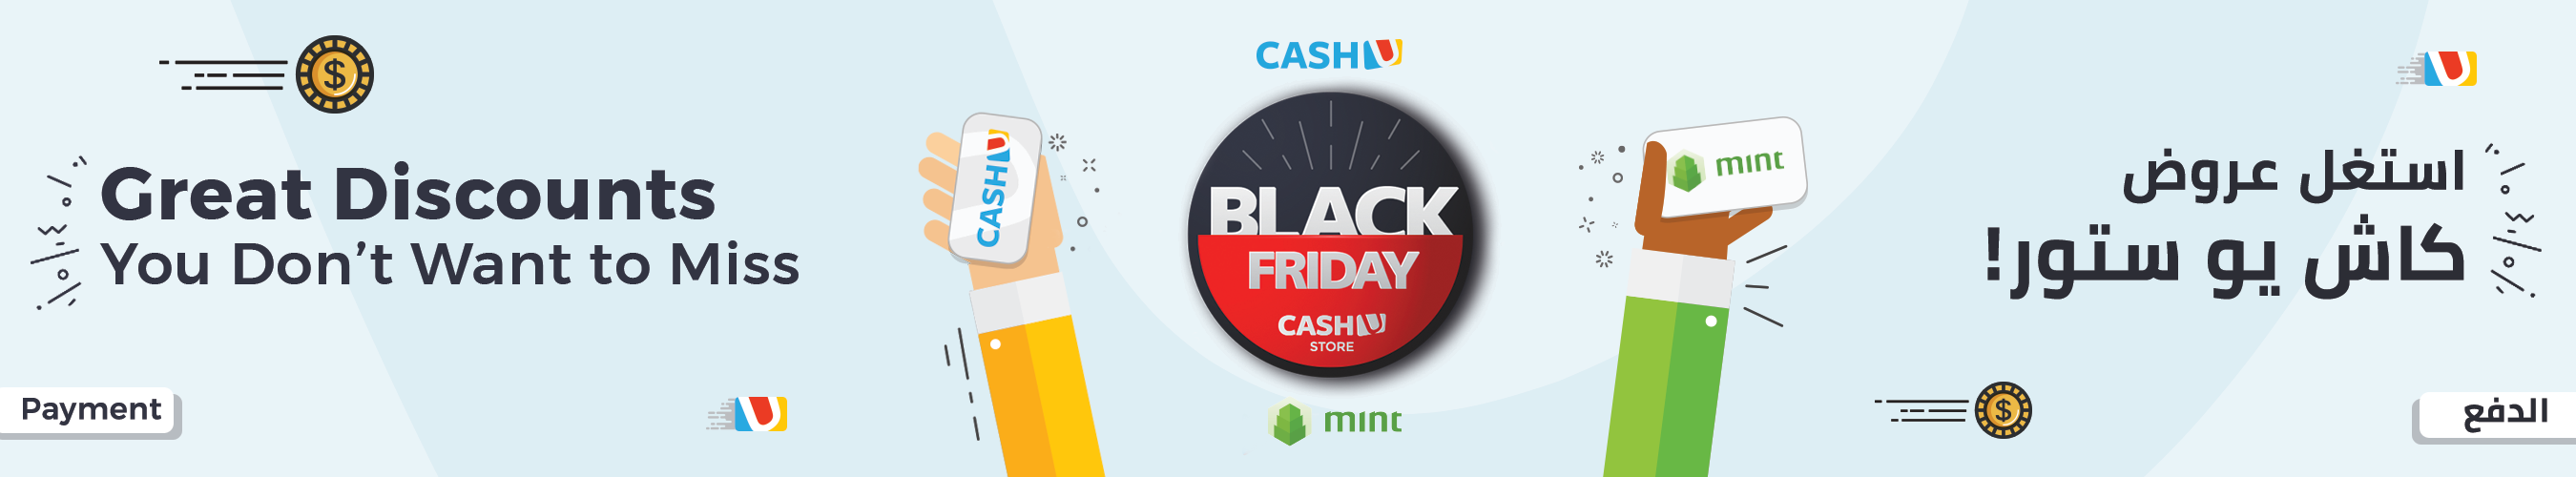 Black Friday Offers - Payment